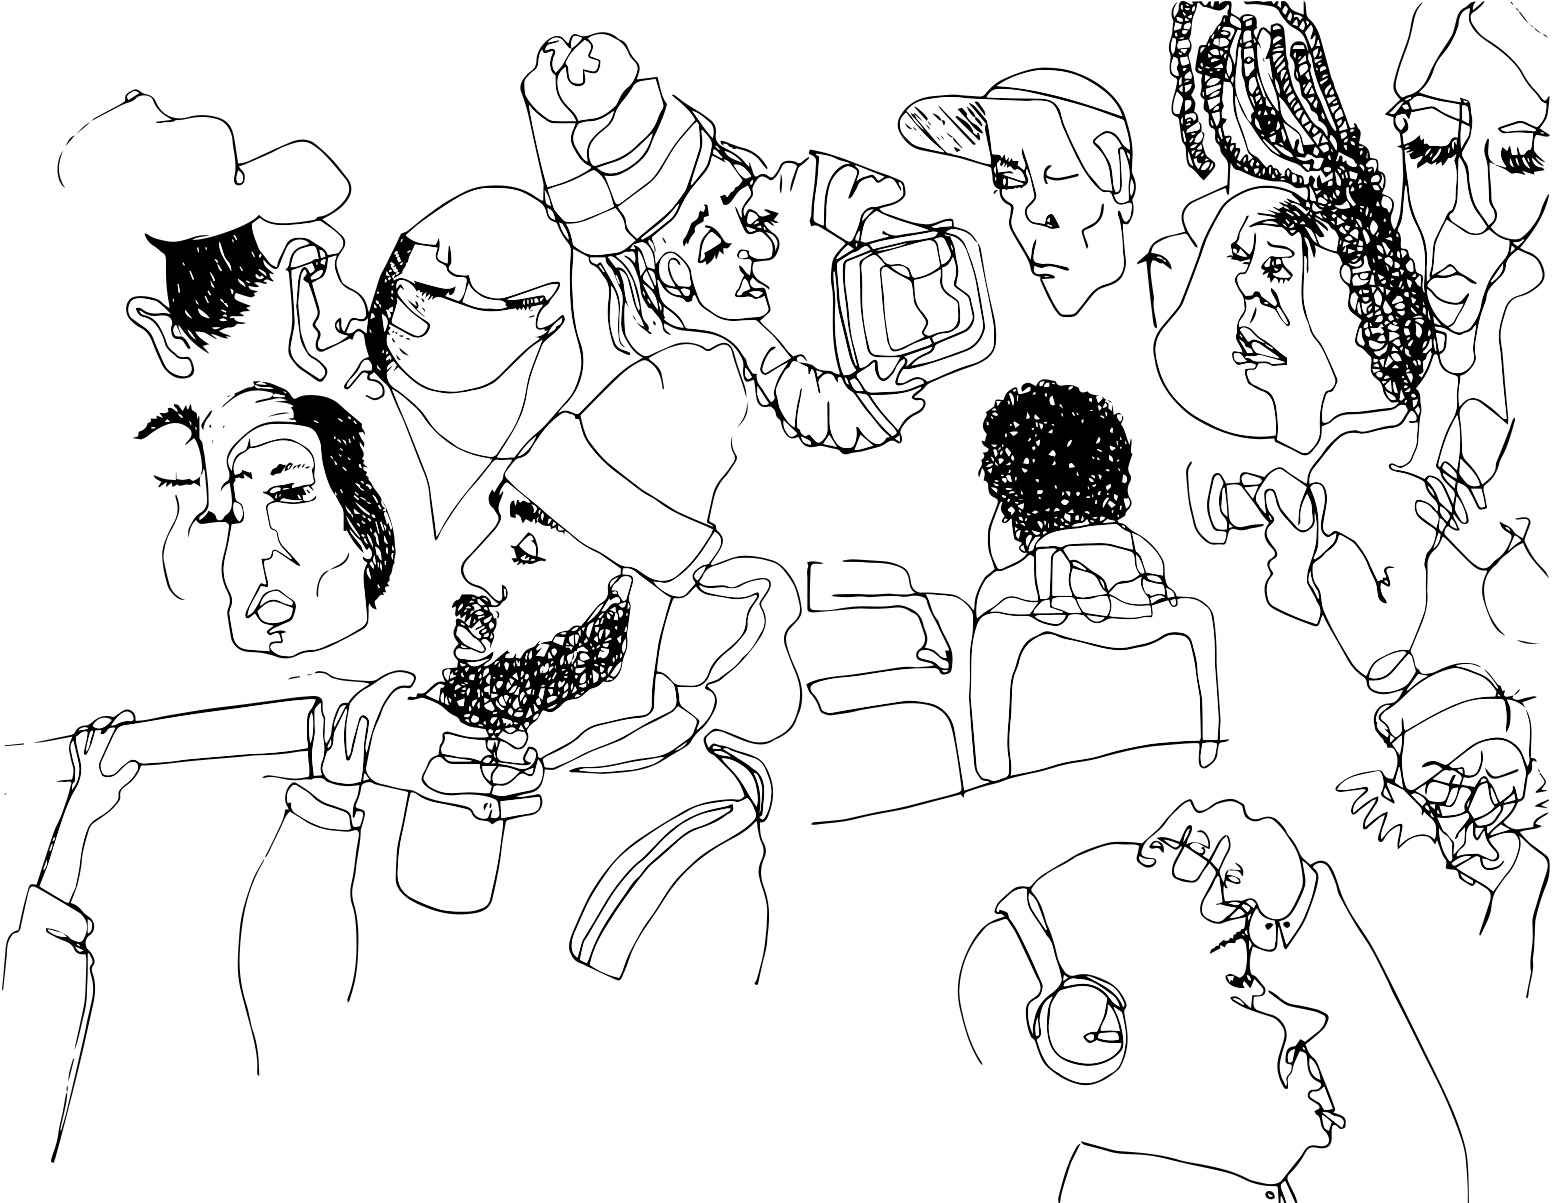 """the commute knows no personal boundaries , 2018   Ink on paper, vectorized  11"""" x 8.5"""""""